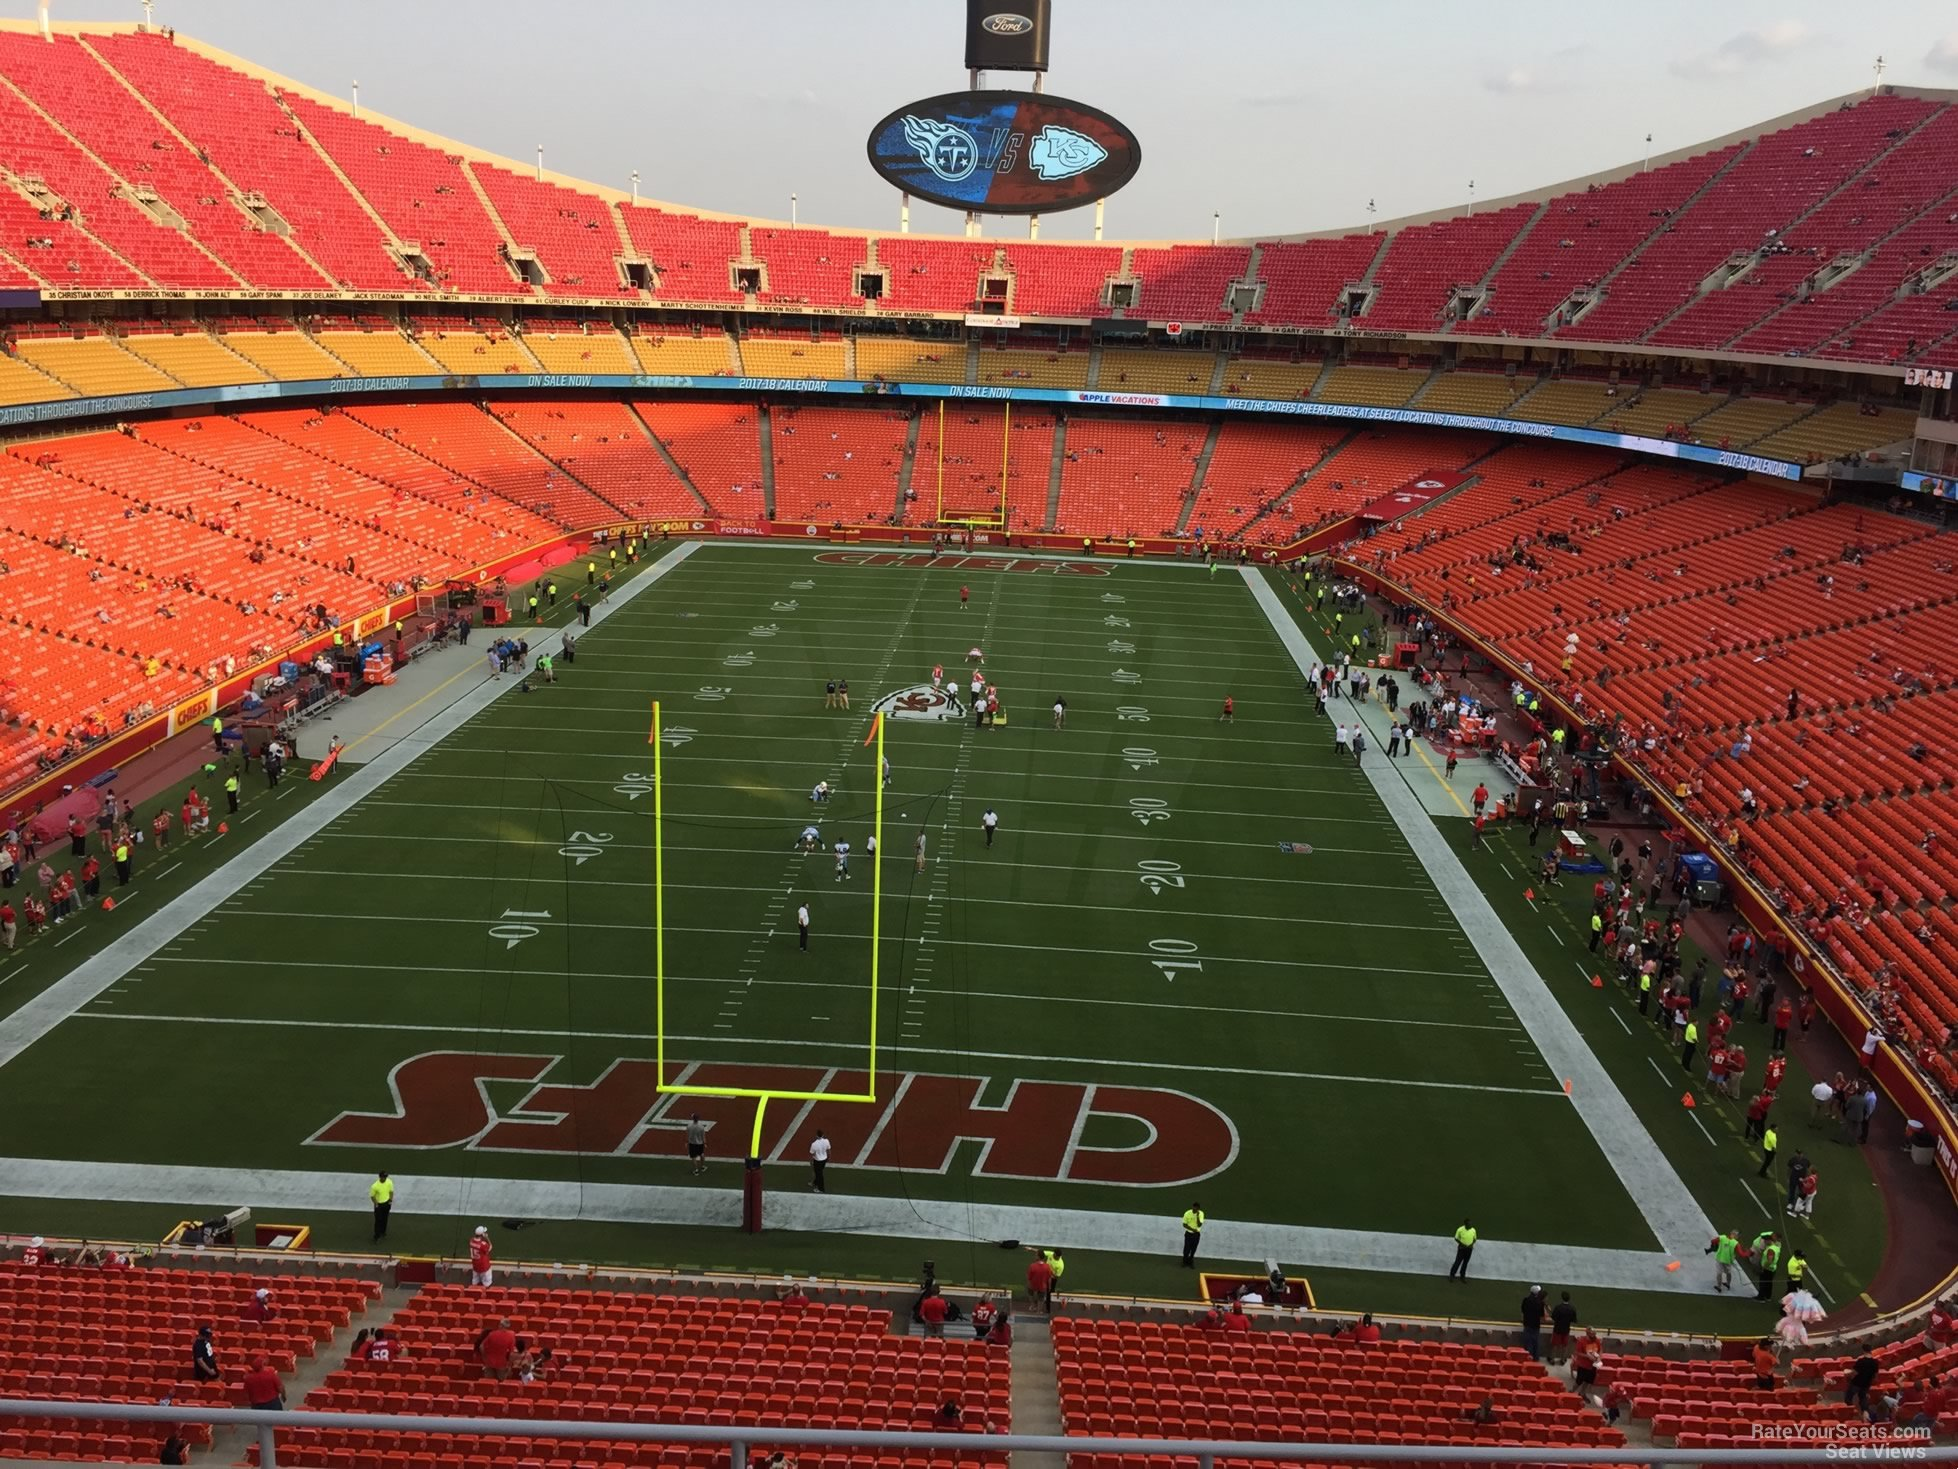 Seat View for Arrowhead Stadium Section 335, Row 7